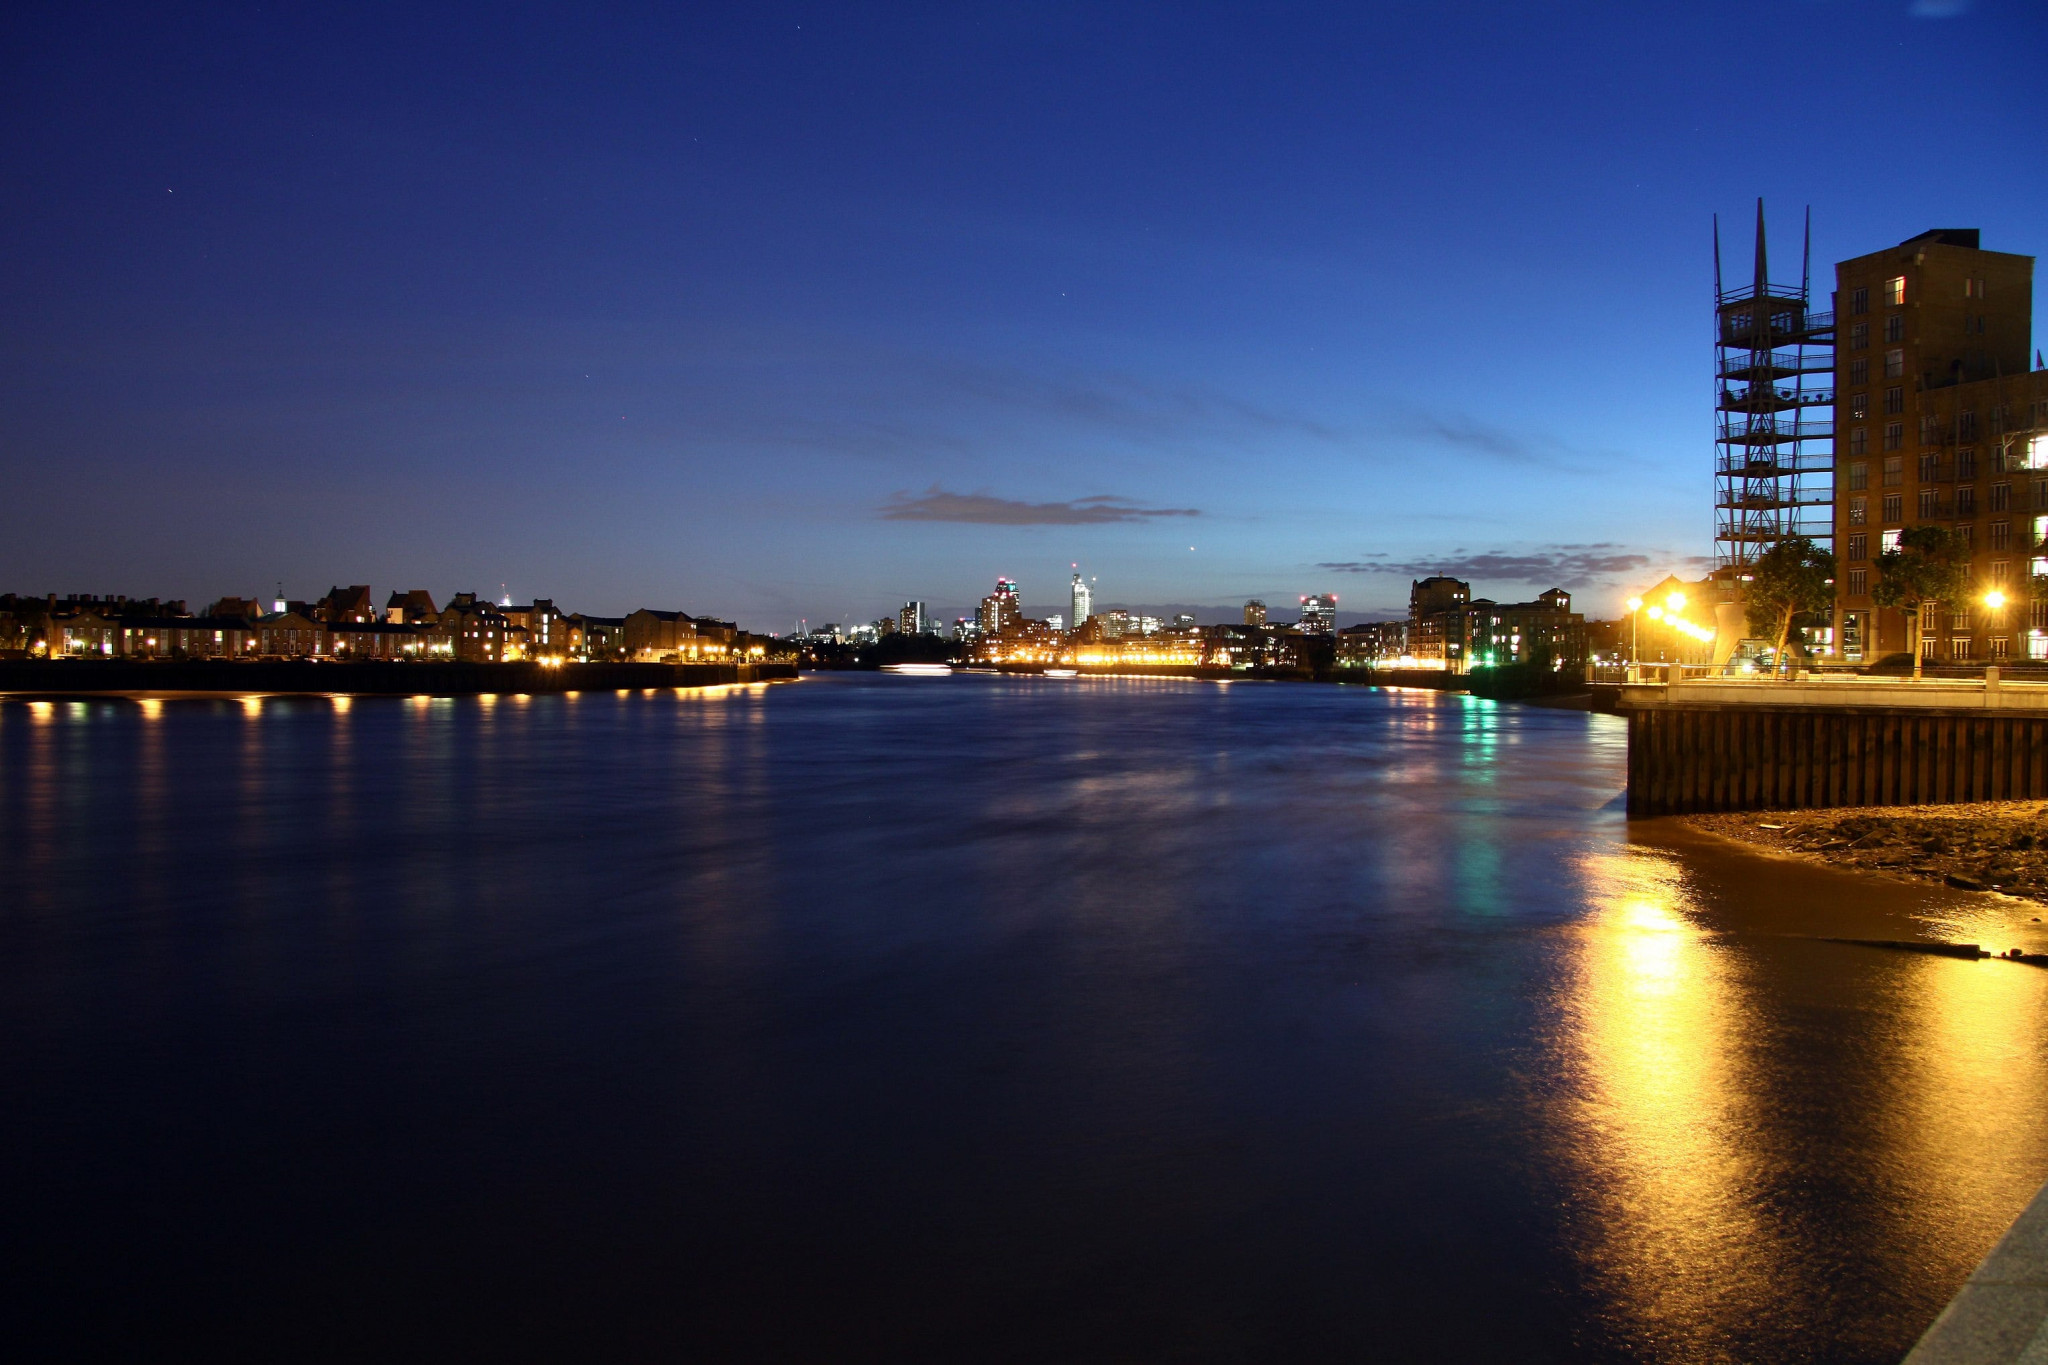 Long exposure over the thames